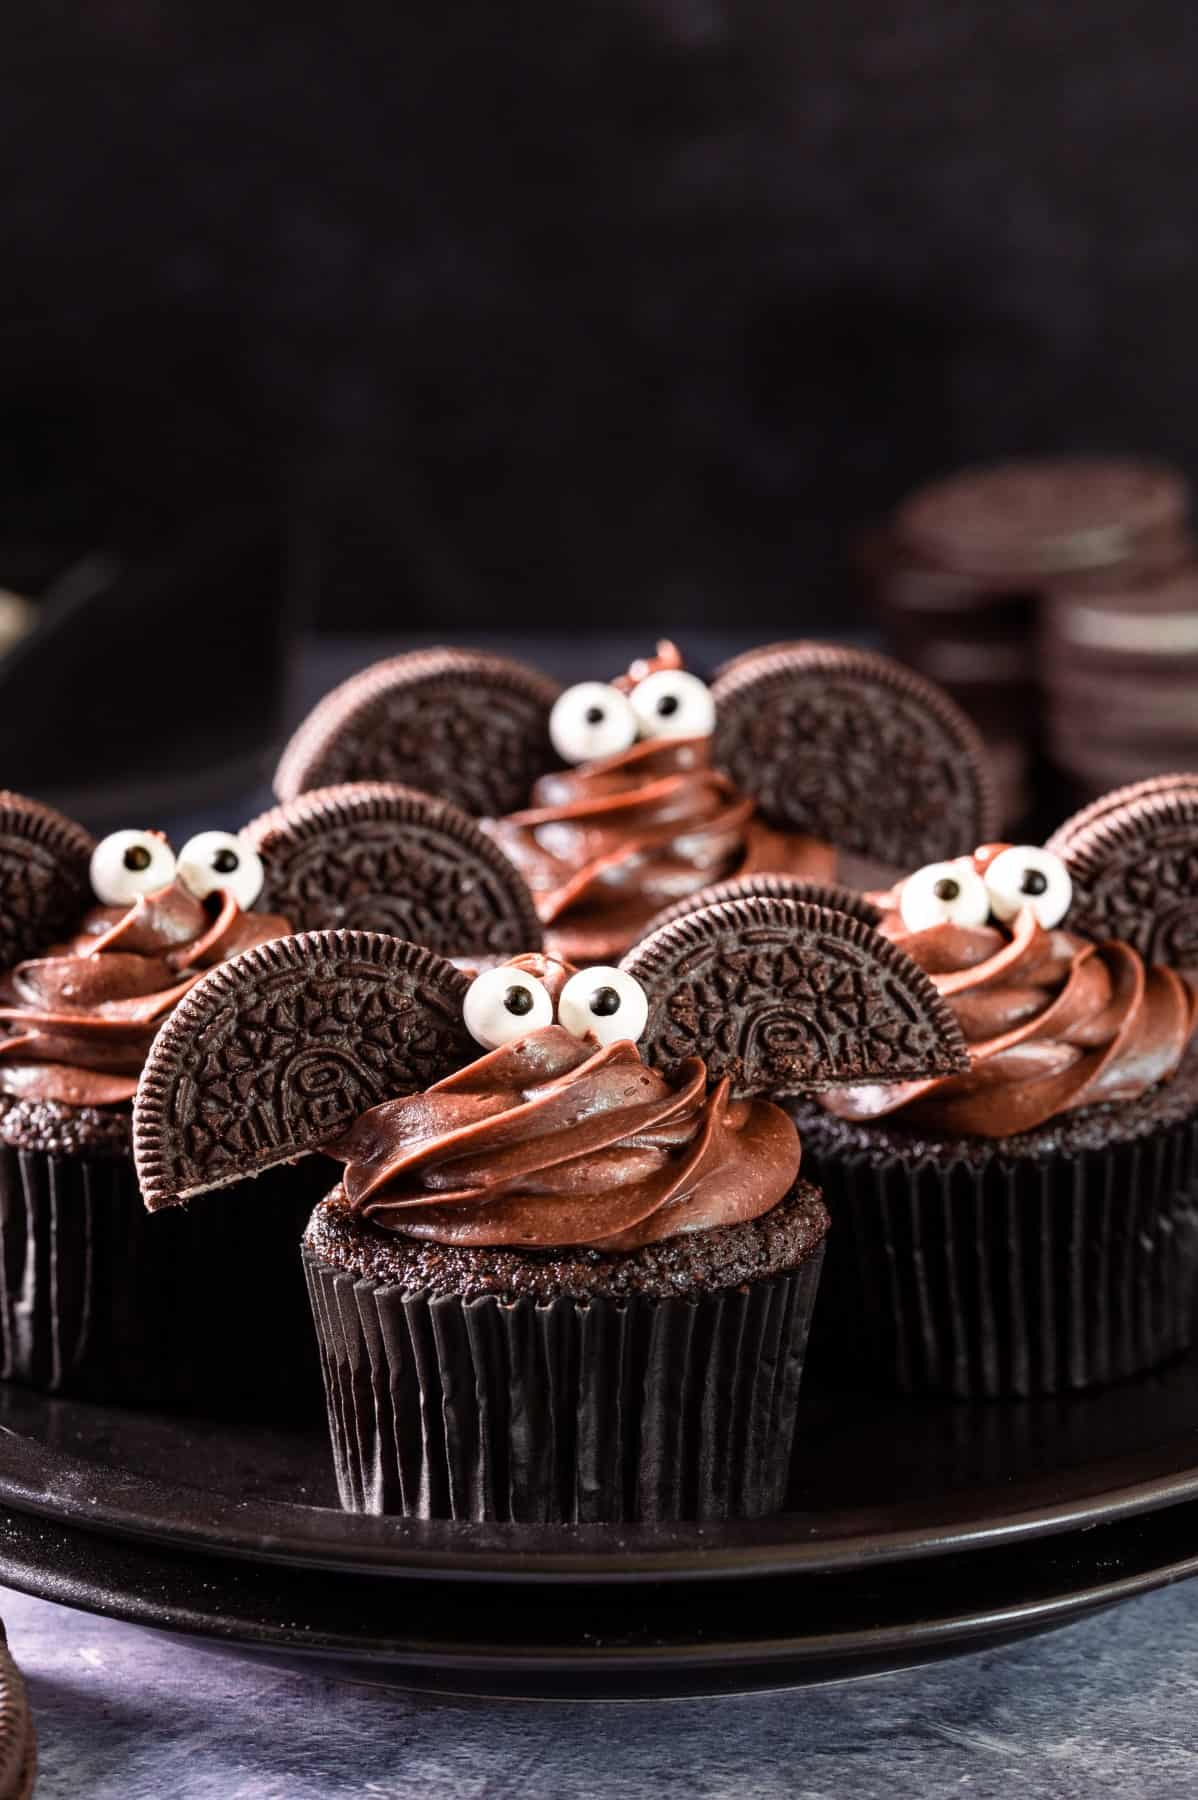 Chocolate Bat Cupcakes on a plate